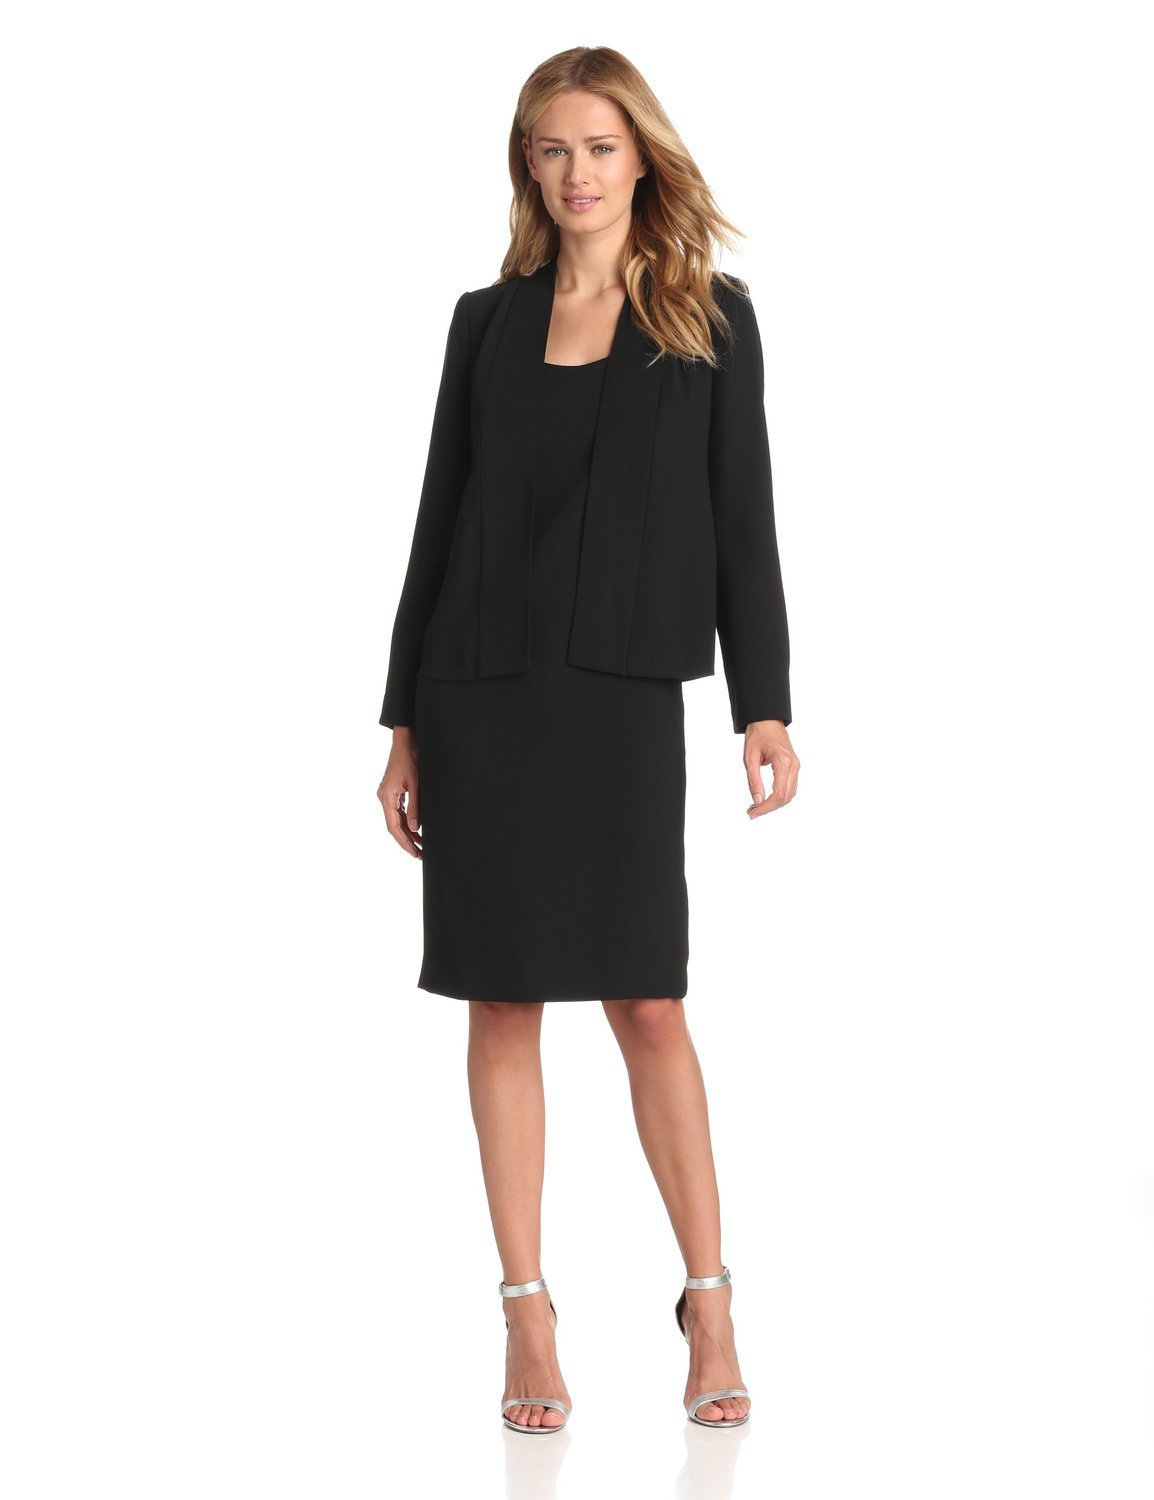 In Law Suite Ideas Womens Black Dress Suits Dress Yp